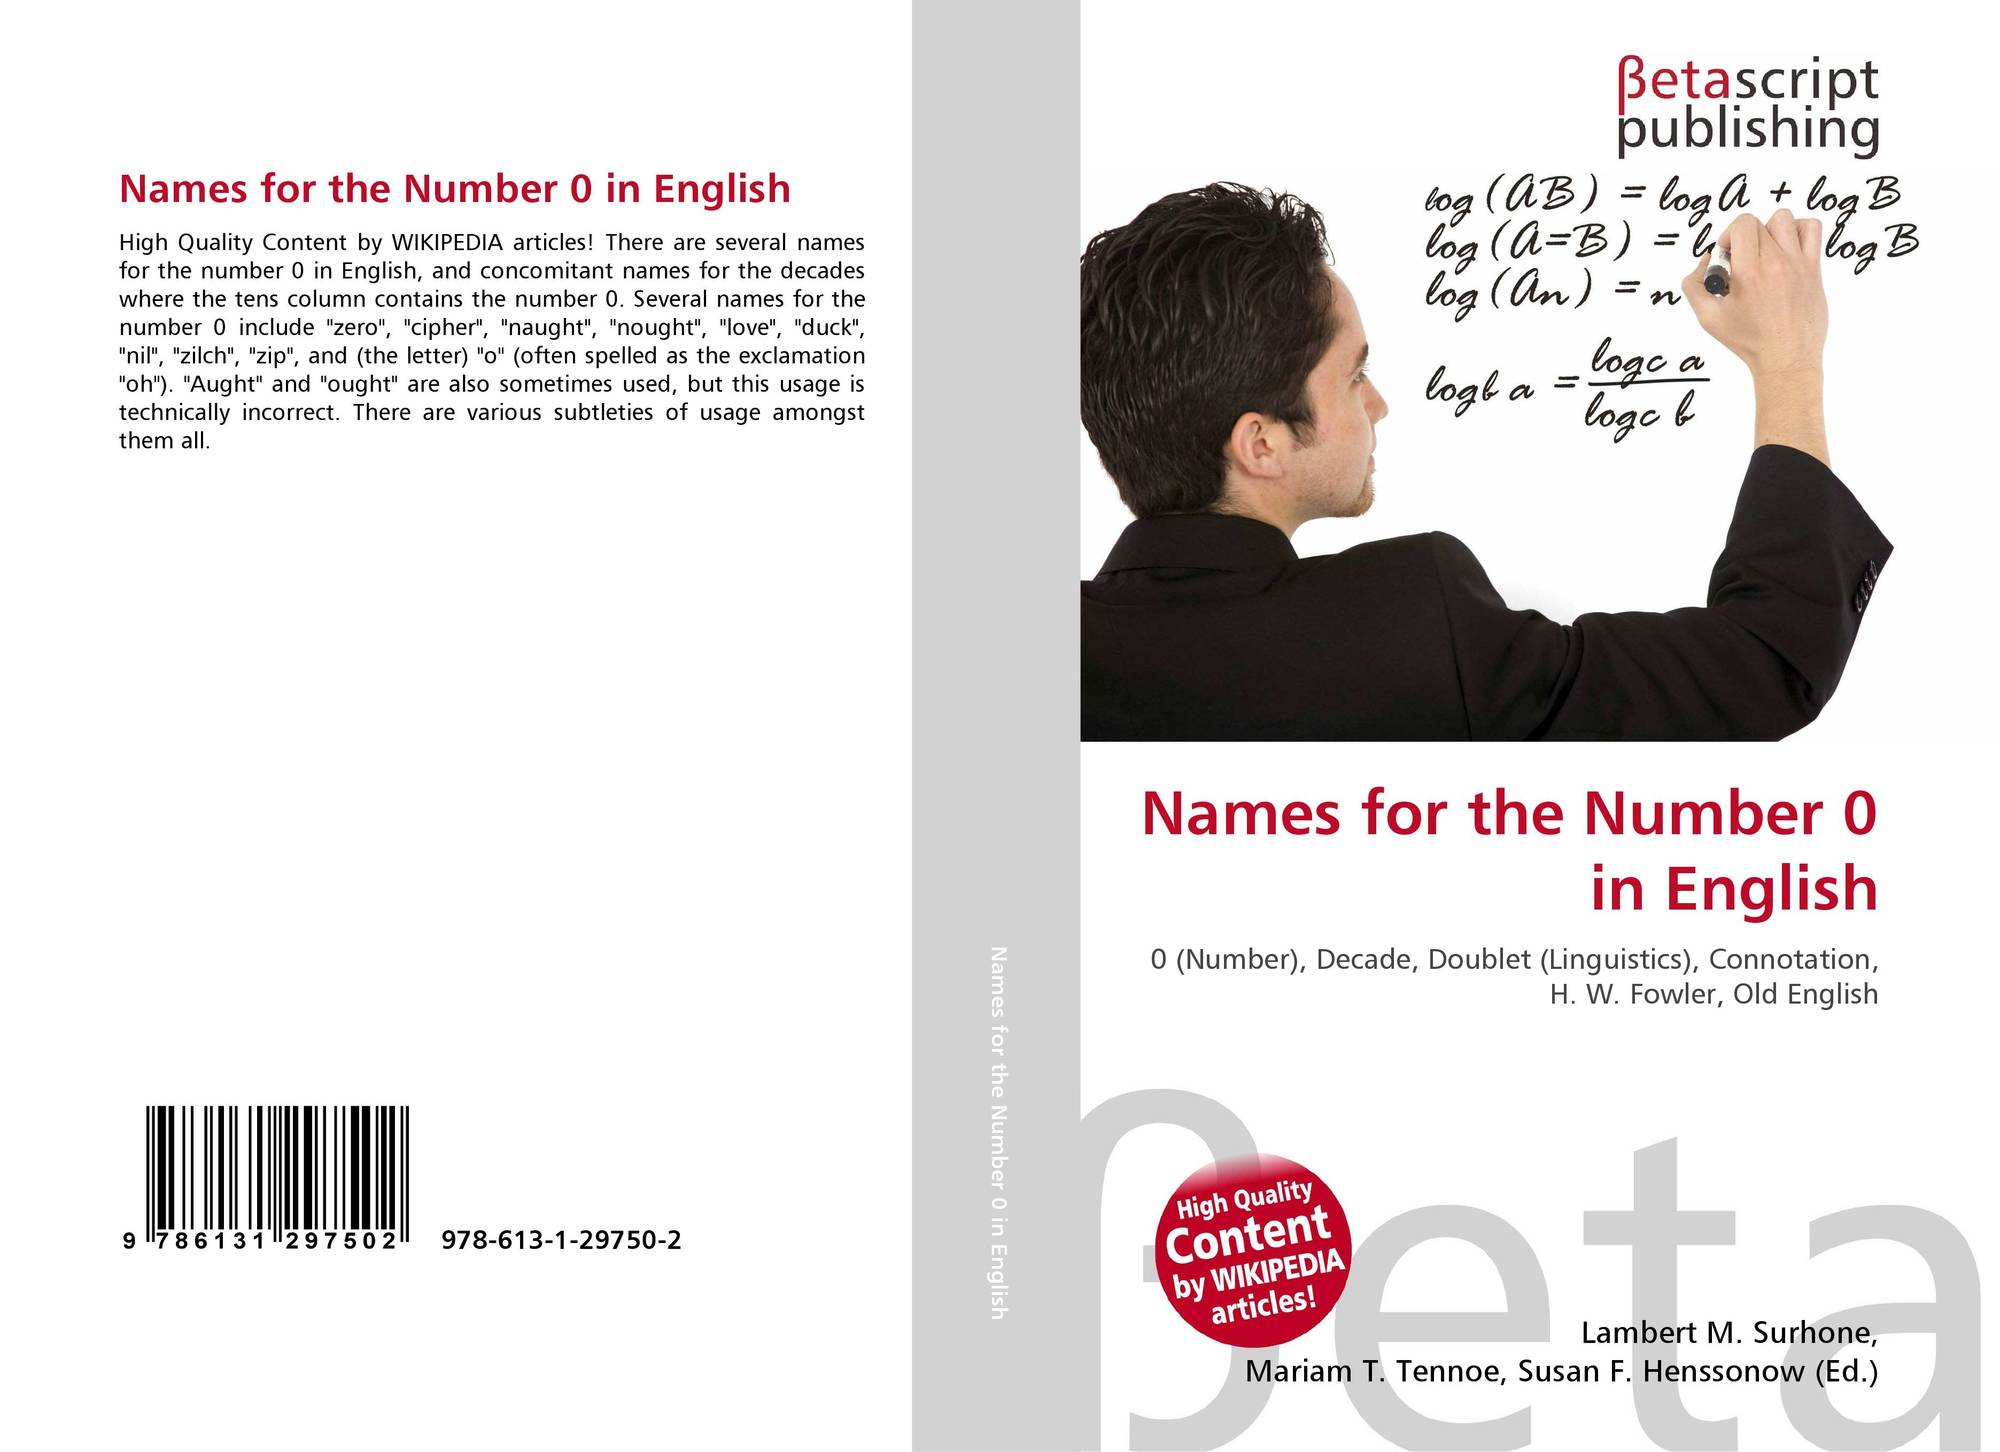 Names for the Number 0 in English, 978-613-1-29750-2